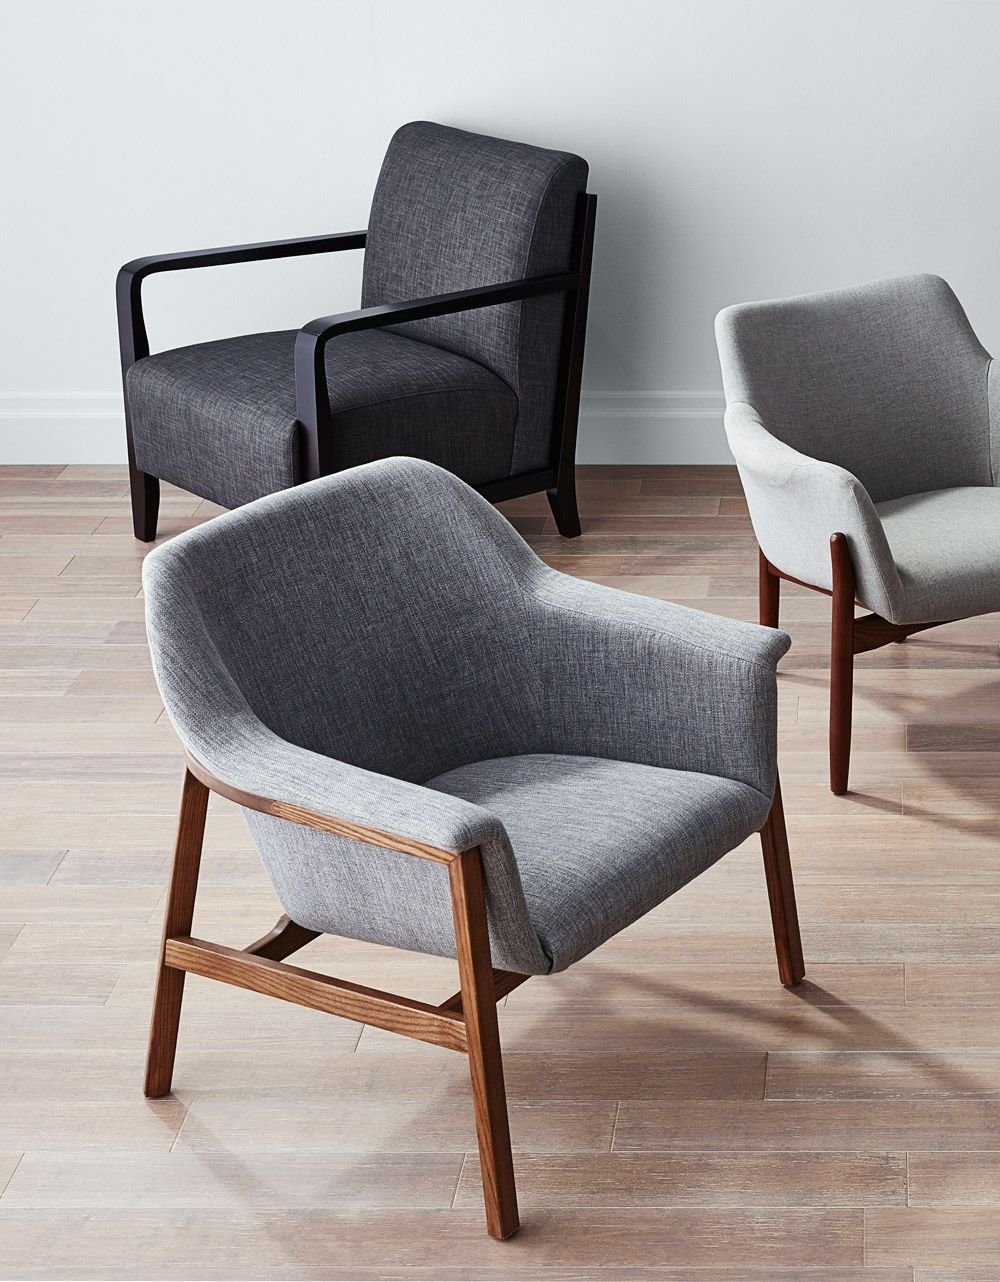 The charlie accent chair is made of solid american ash wood with a smoked walnut finish and is upholstered in grey textured cotton linen blend fabric